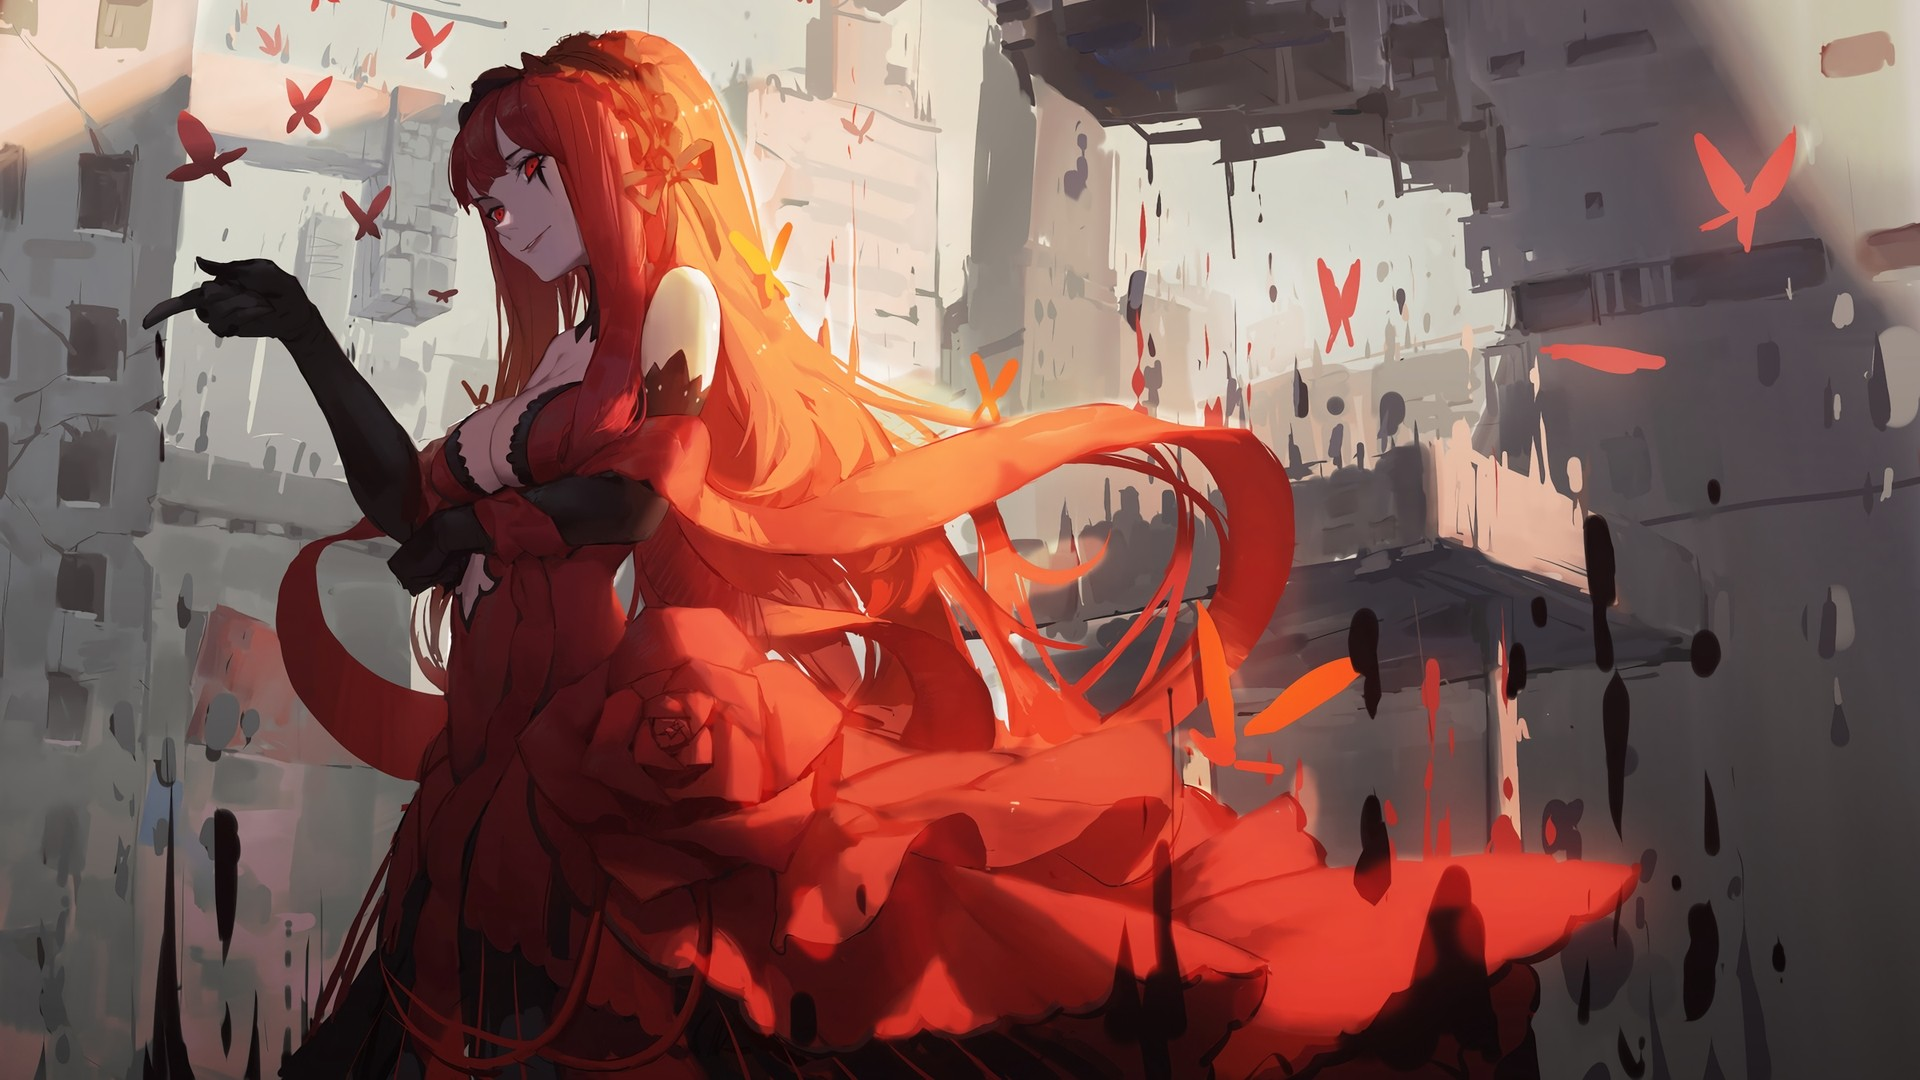 Red Hair Anime Girl Free Wallpaper and Background